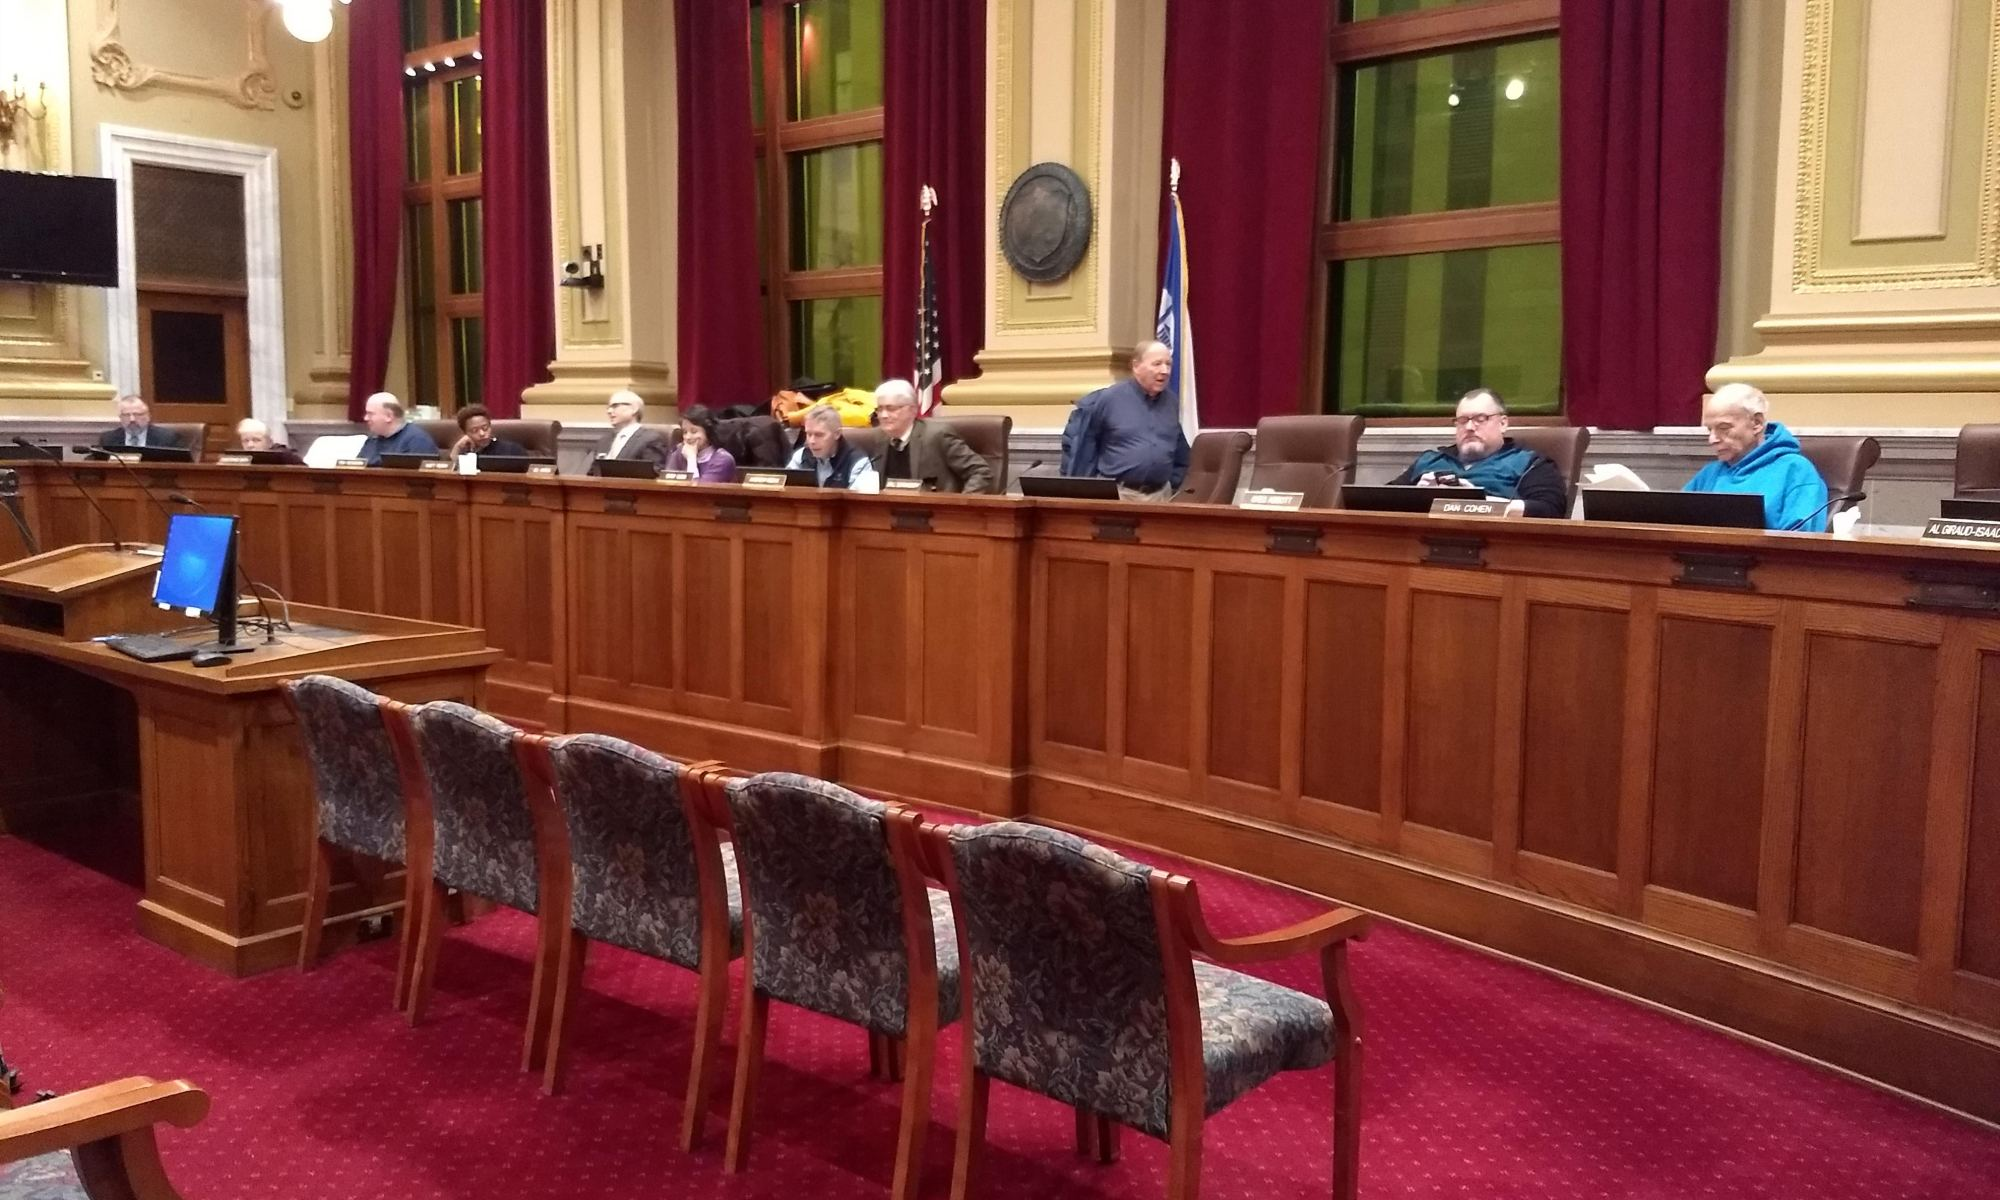 March 6, 2018 meeting of the Minneapolis Charter Commission